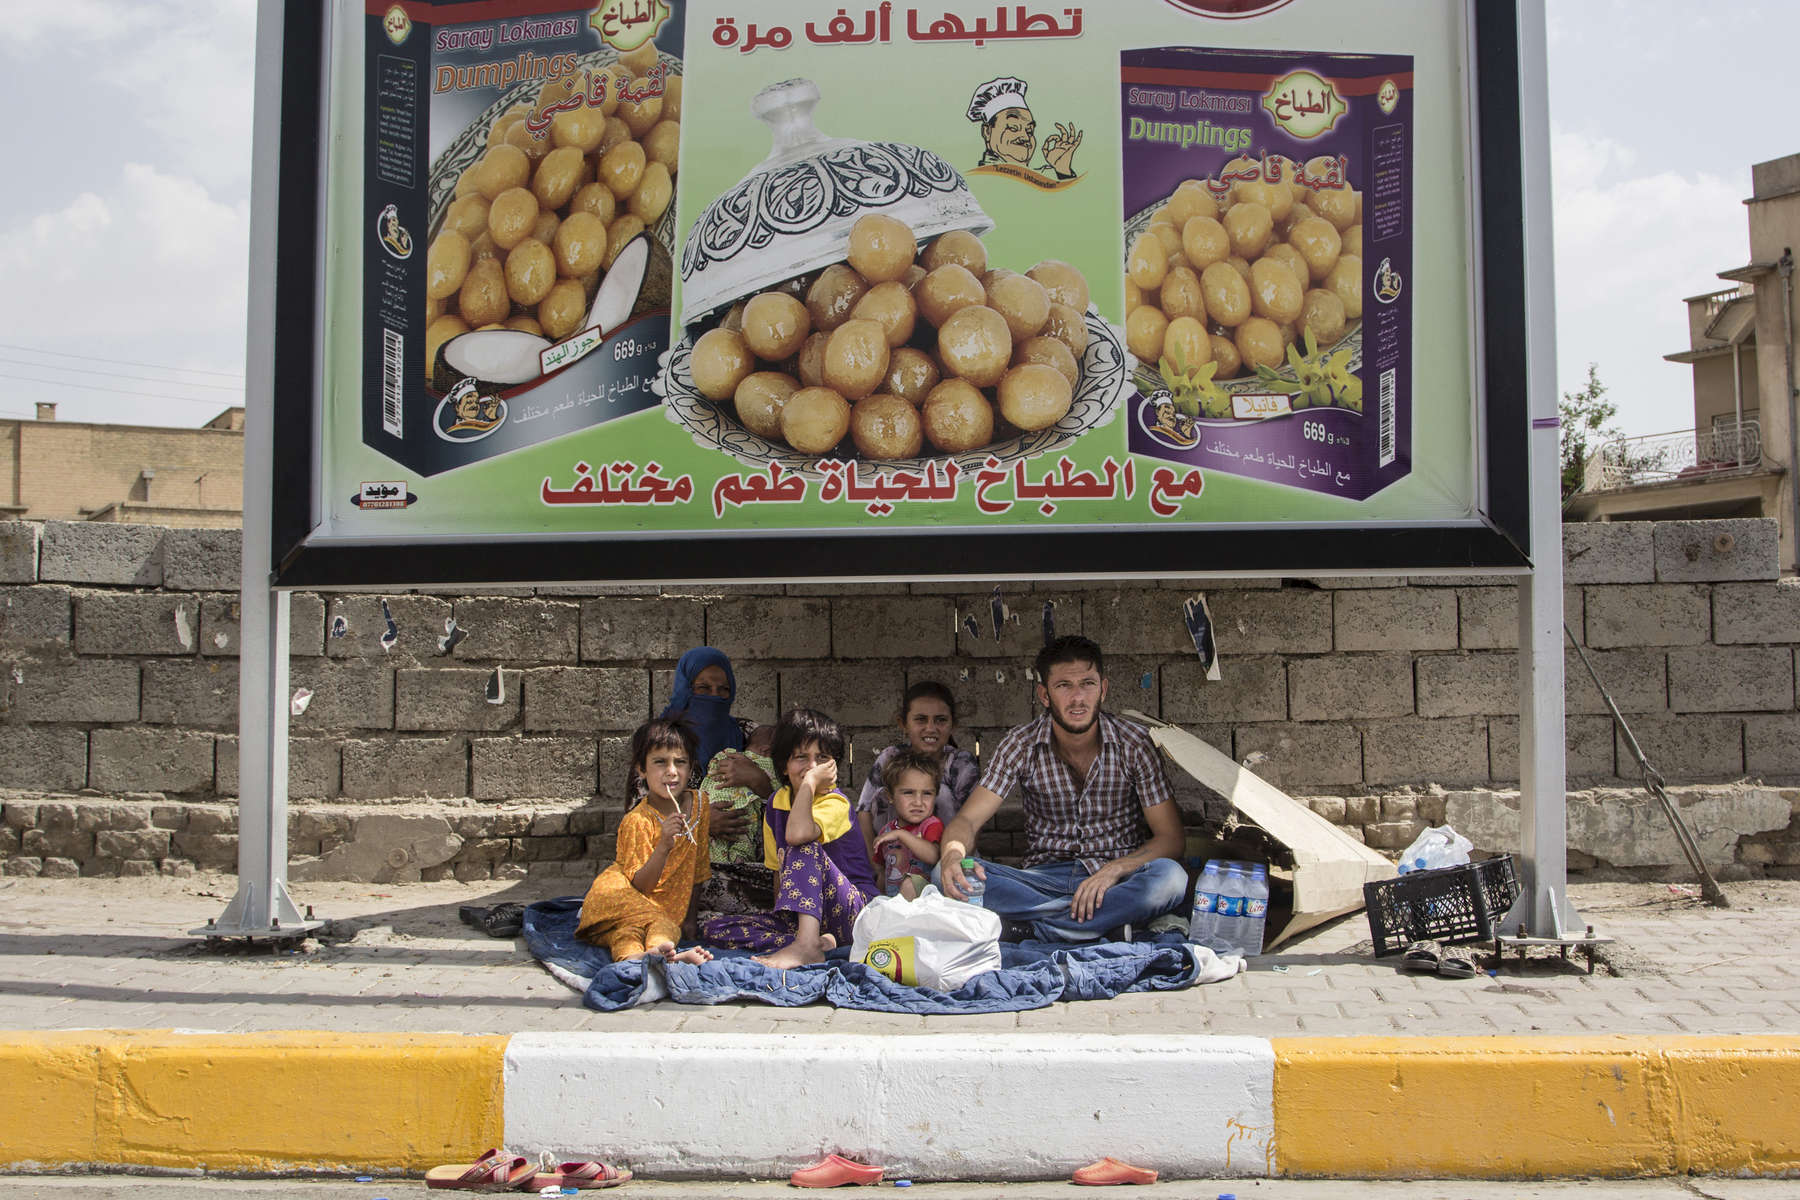 22/07/2014. Kirkuk, Iraq. A Sunni refugee family from Mosul shelter underneath a hoarding advertising sweets in Kirkuk, Iraq. The family left all of their possessions behind in Mosul when they fled to escape bombing by the Iraqi Air Force.